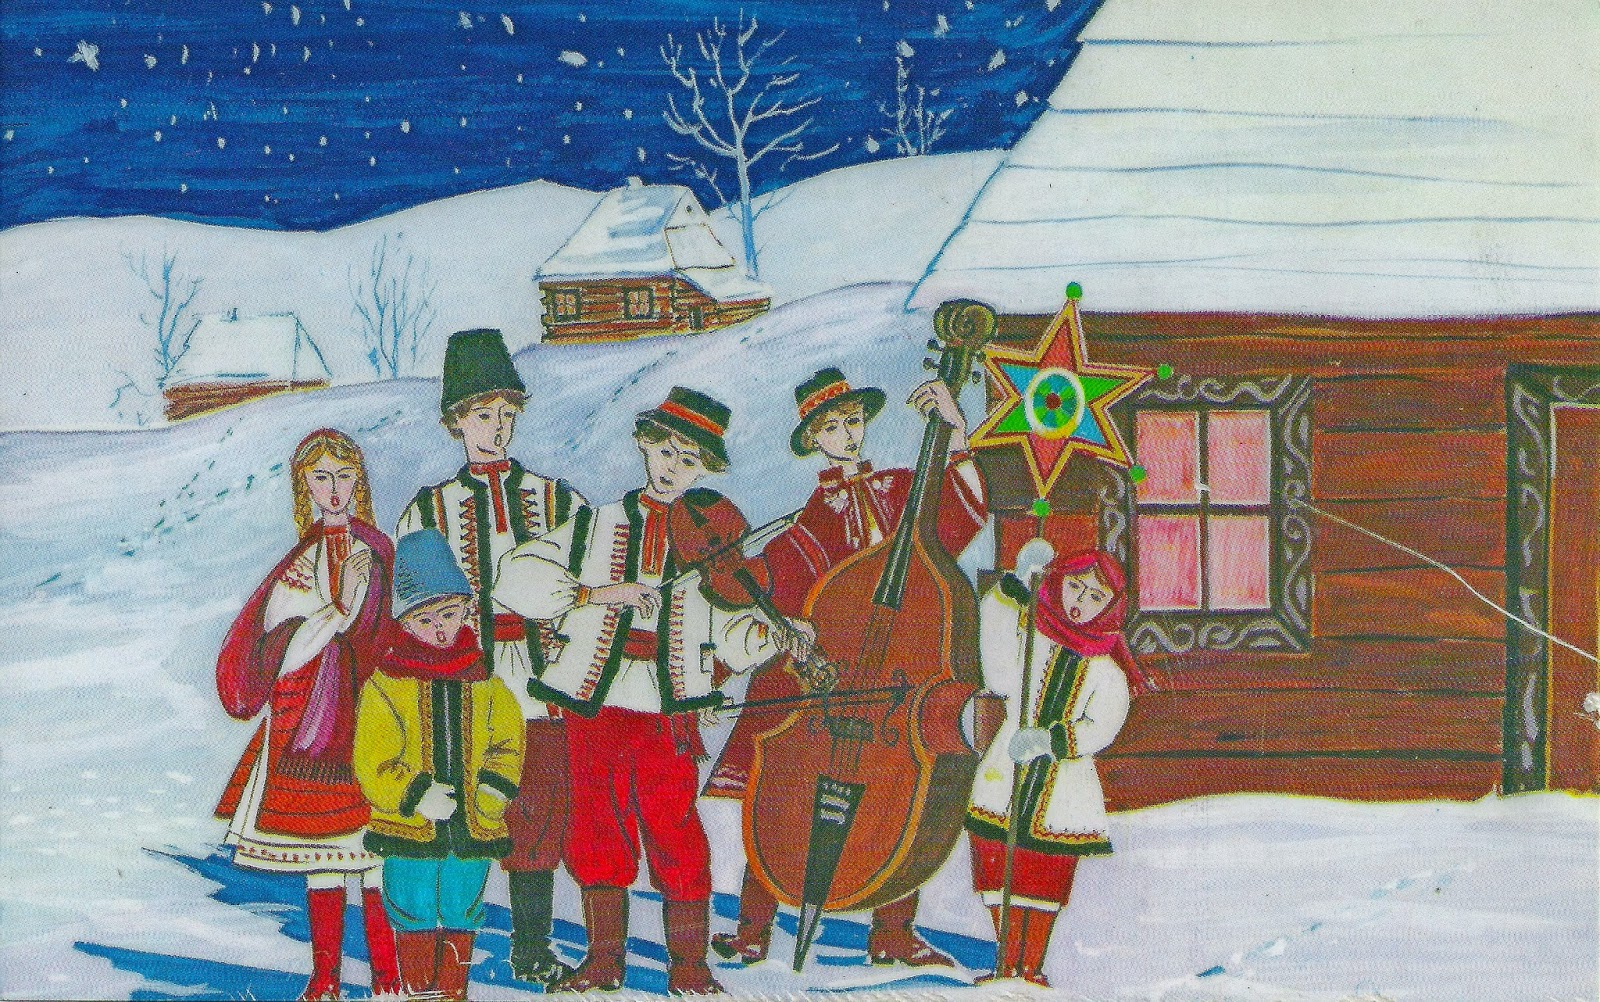 Rooted in eastern europe christmas in ukraine 100 years ago painting by yaroslava surmach mills showing carolers outside a home in ukraine m4hsunfo